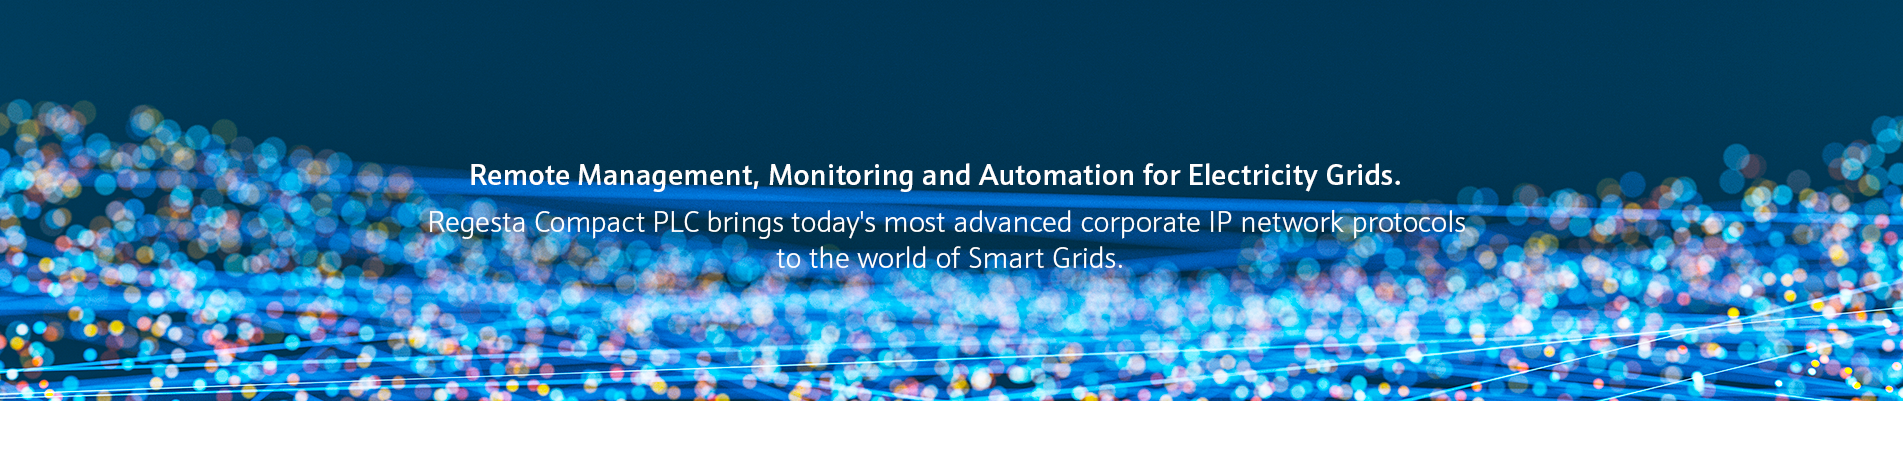 Remote Management, Monitoring and Automation for Electricity